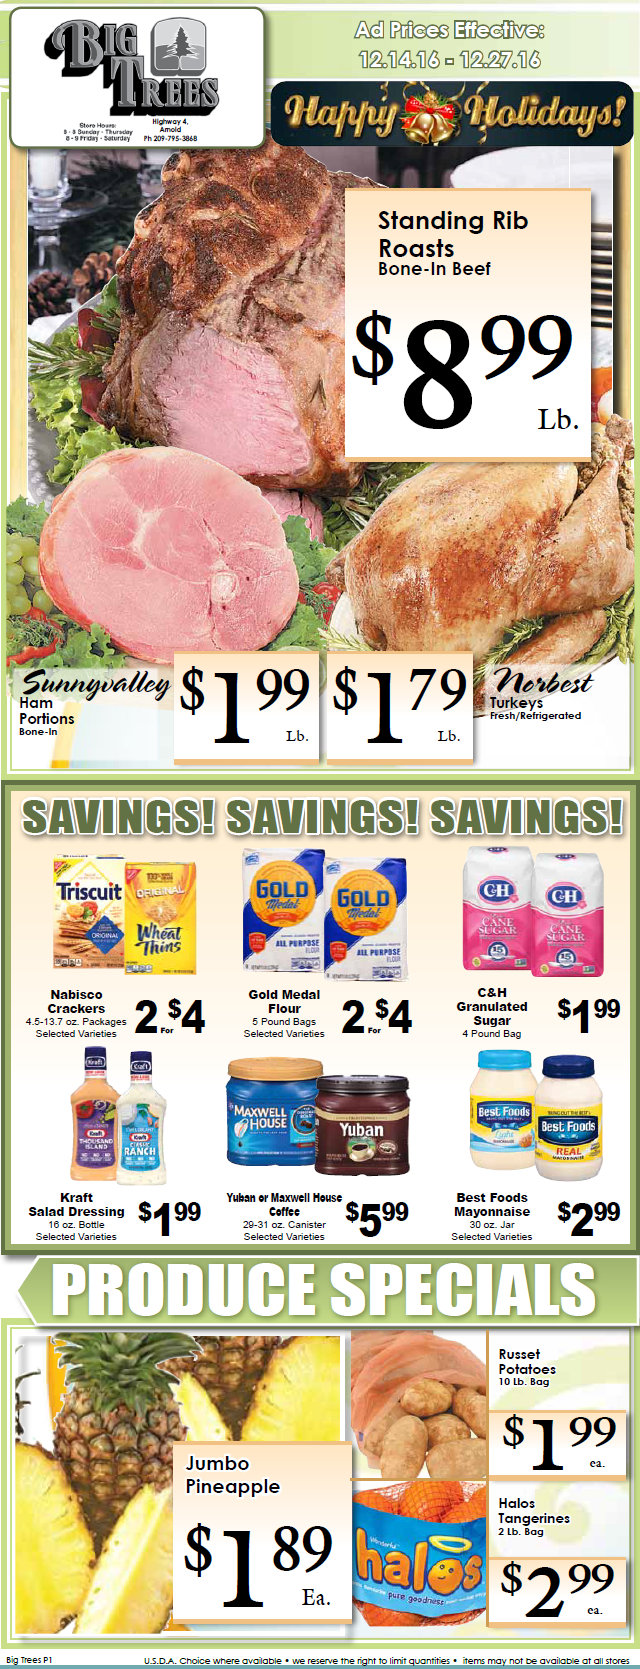 Big Trees Market Weekly Ad & Specials Through December 27th